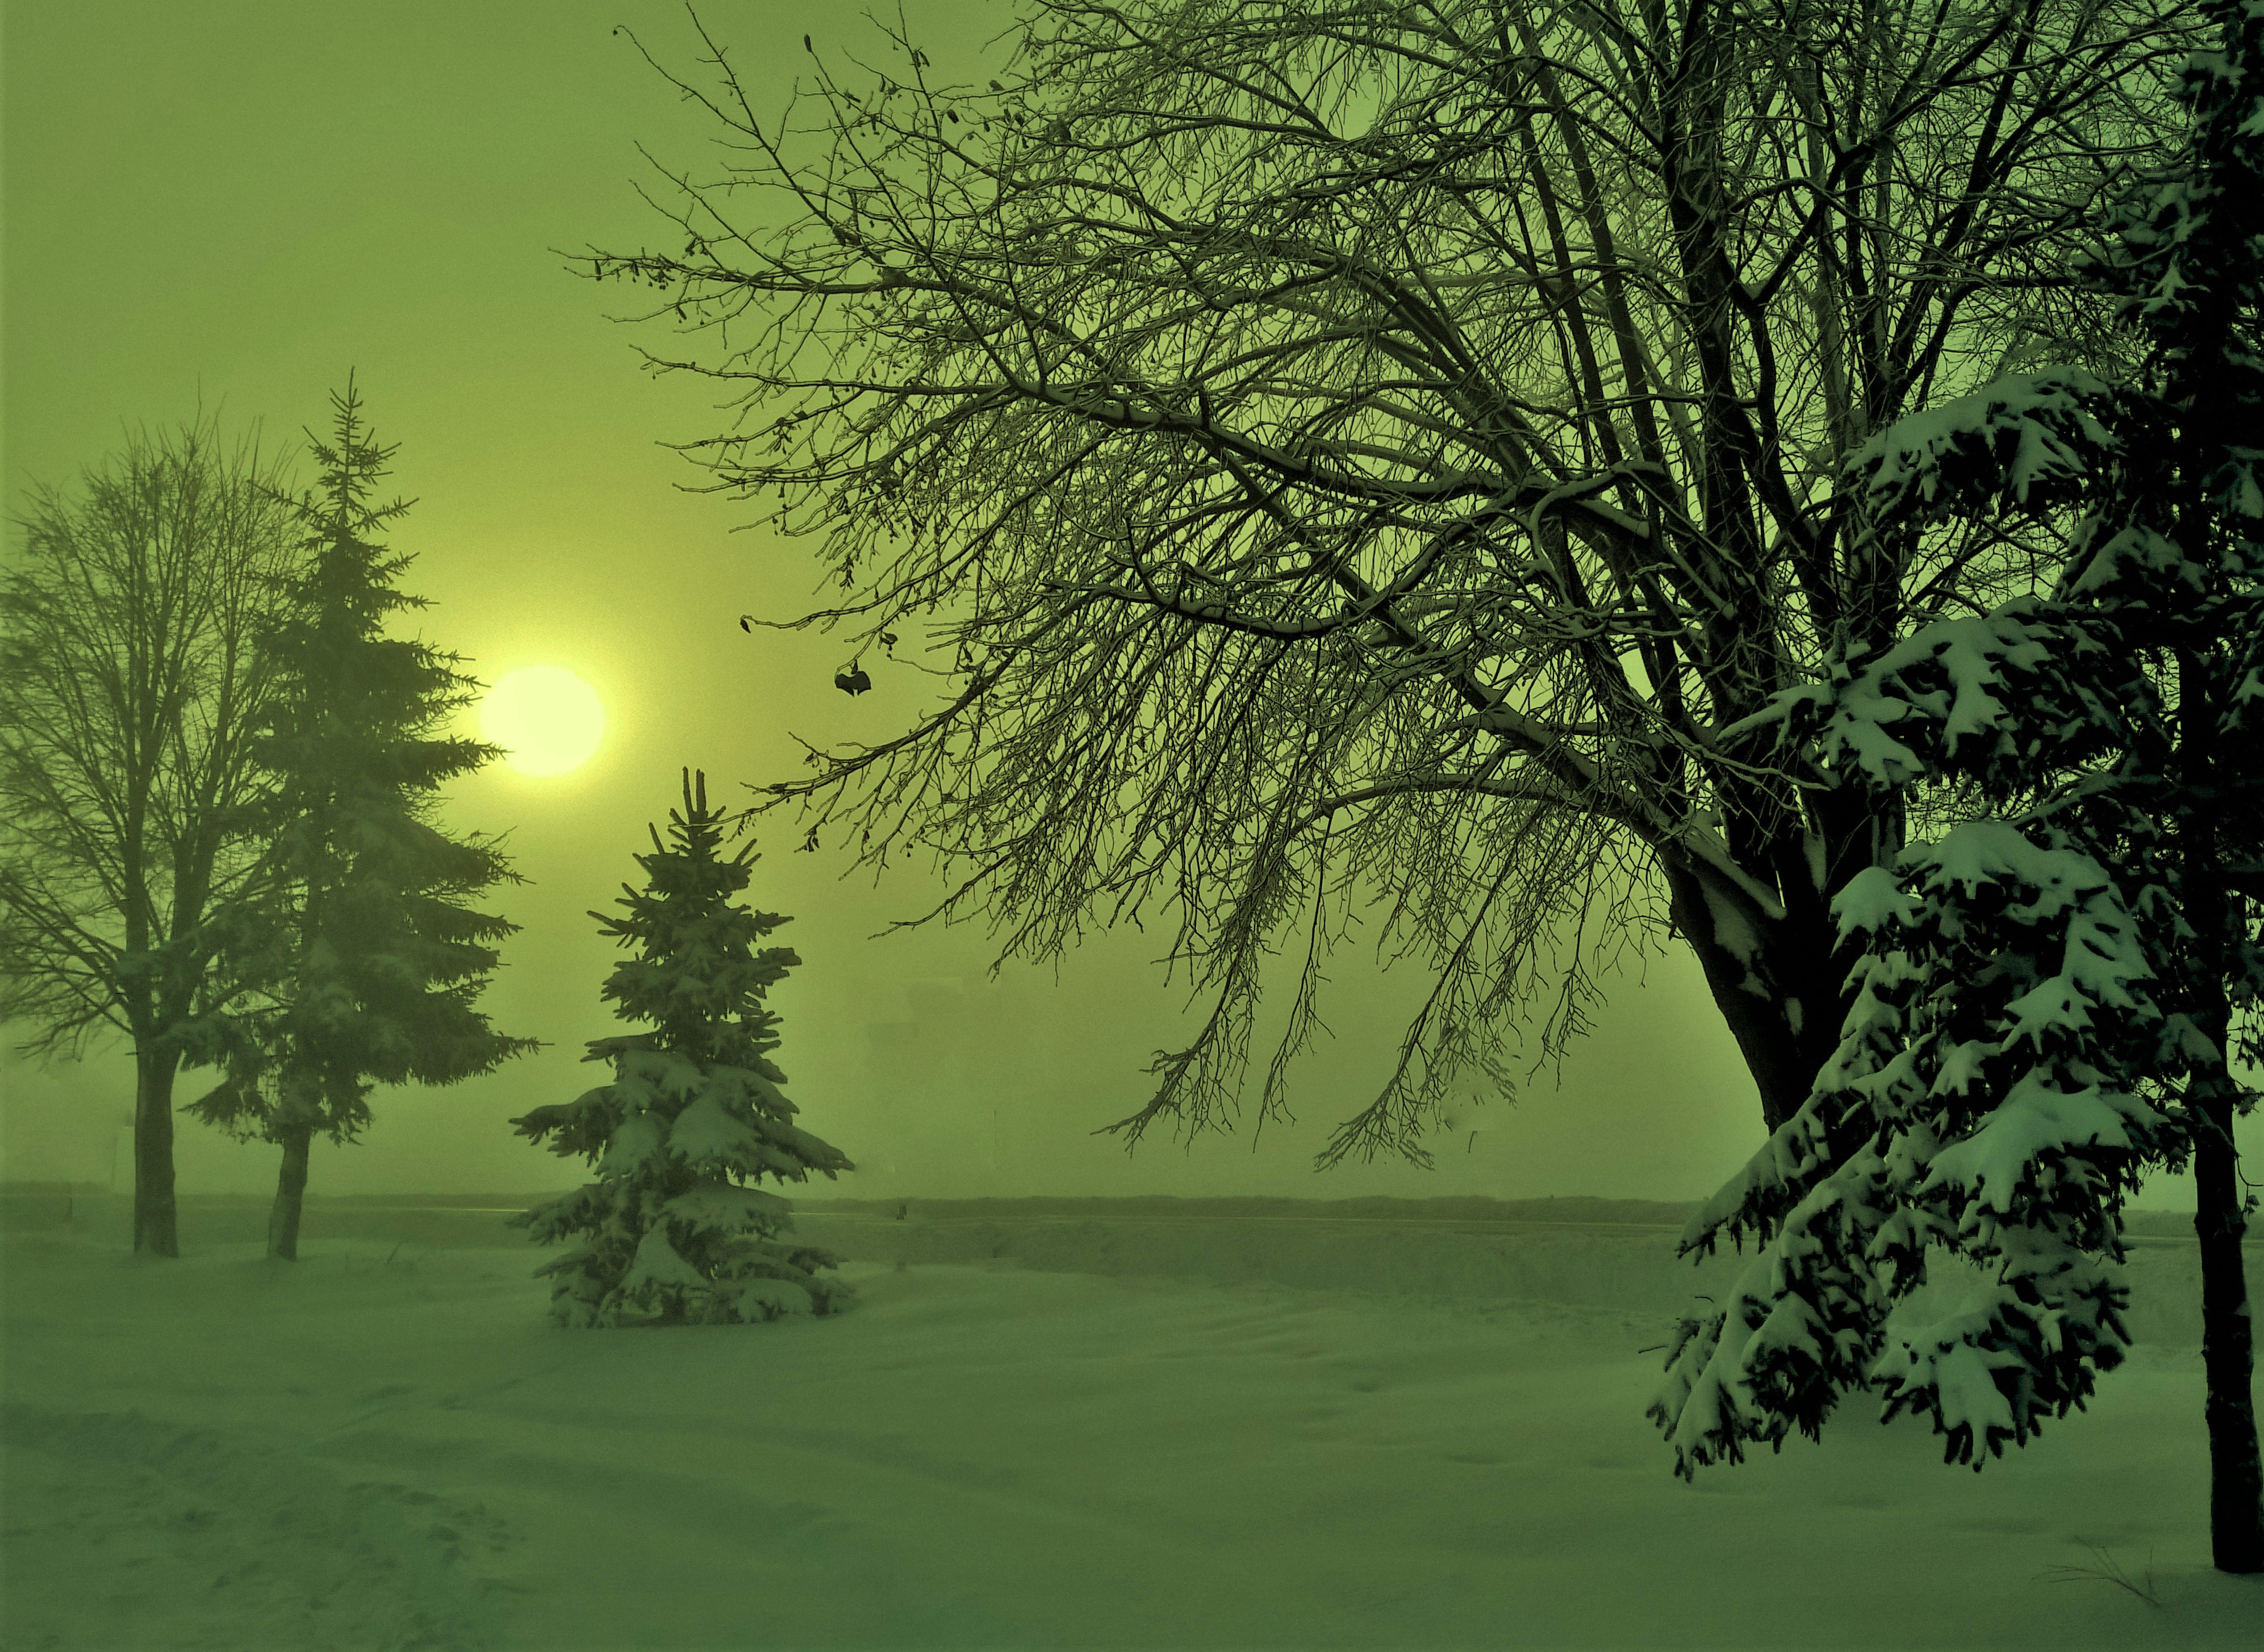 Free Photos > Other Landscapes Photos > Snowy Winter Scene ...